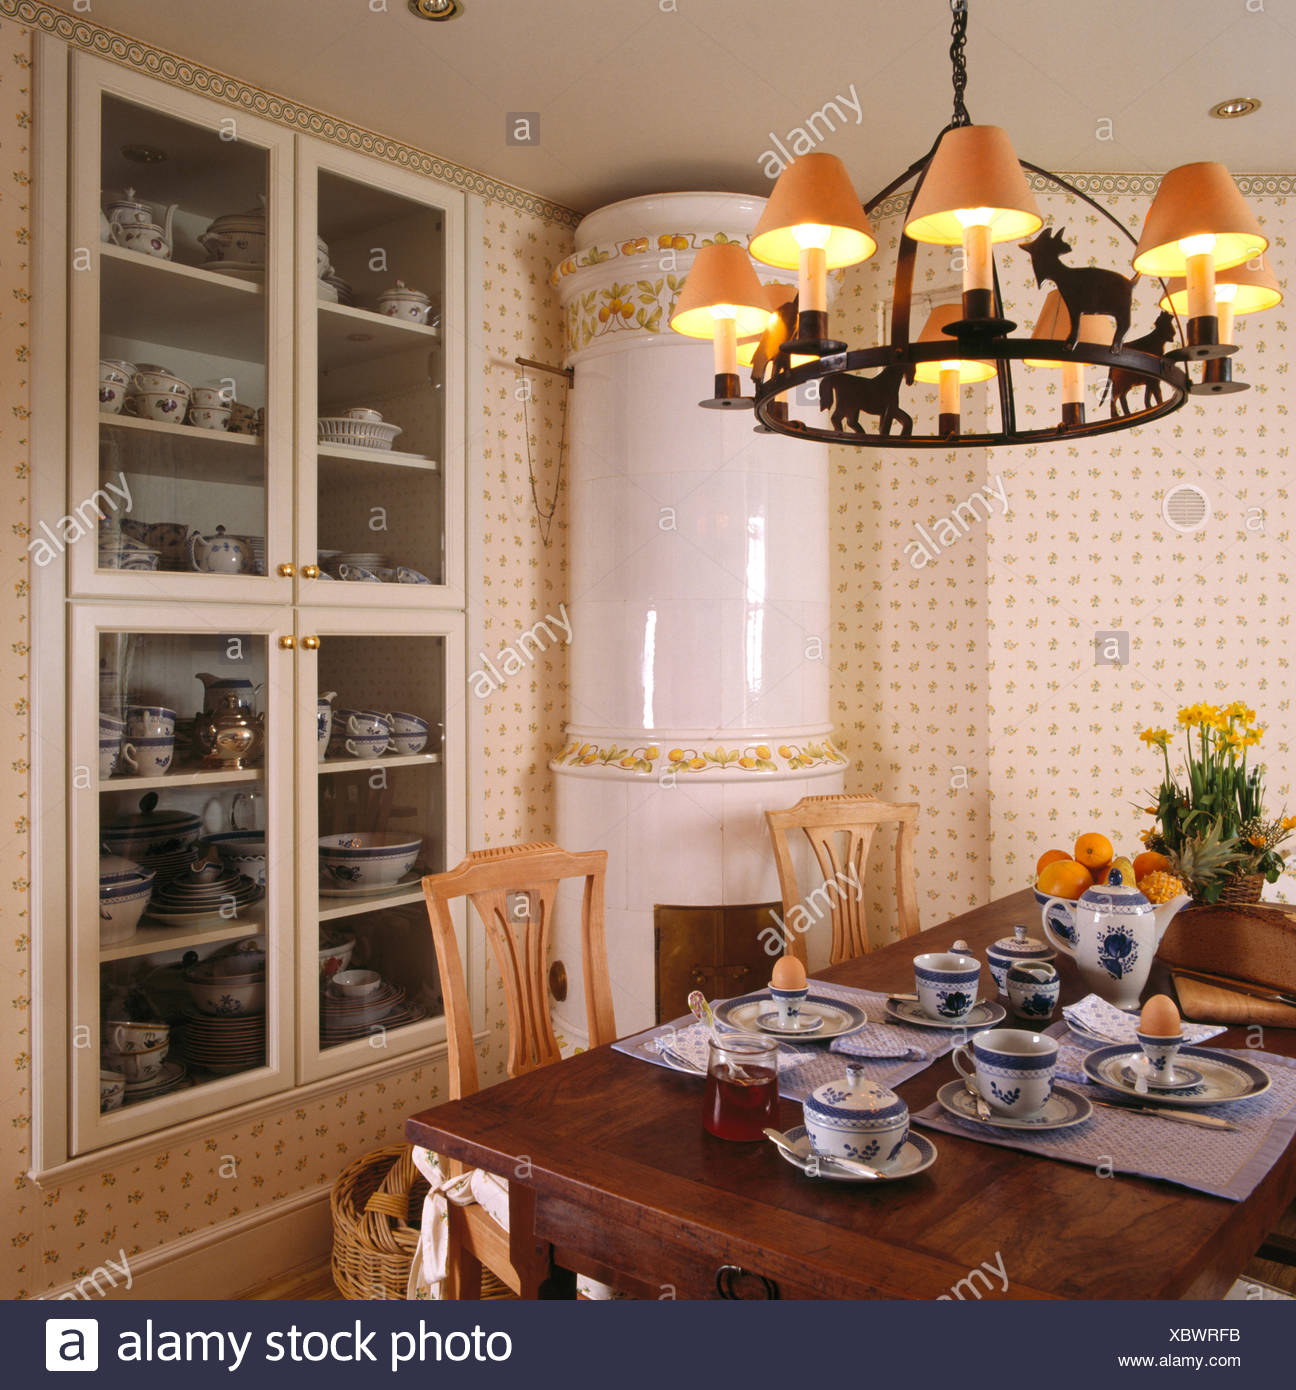 Shades On Wrought Iron Ceiling Light Above Table Set For Breakfast In Dining Room With Large White Ceramic Stove